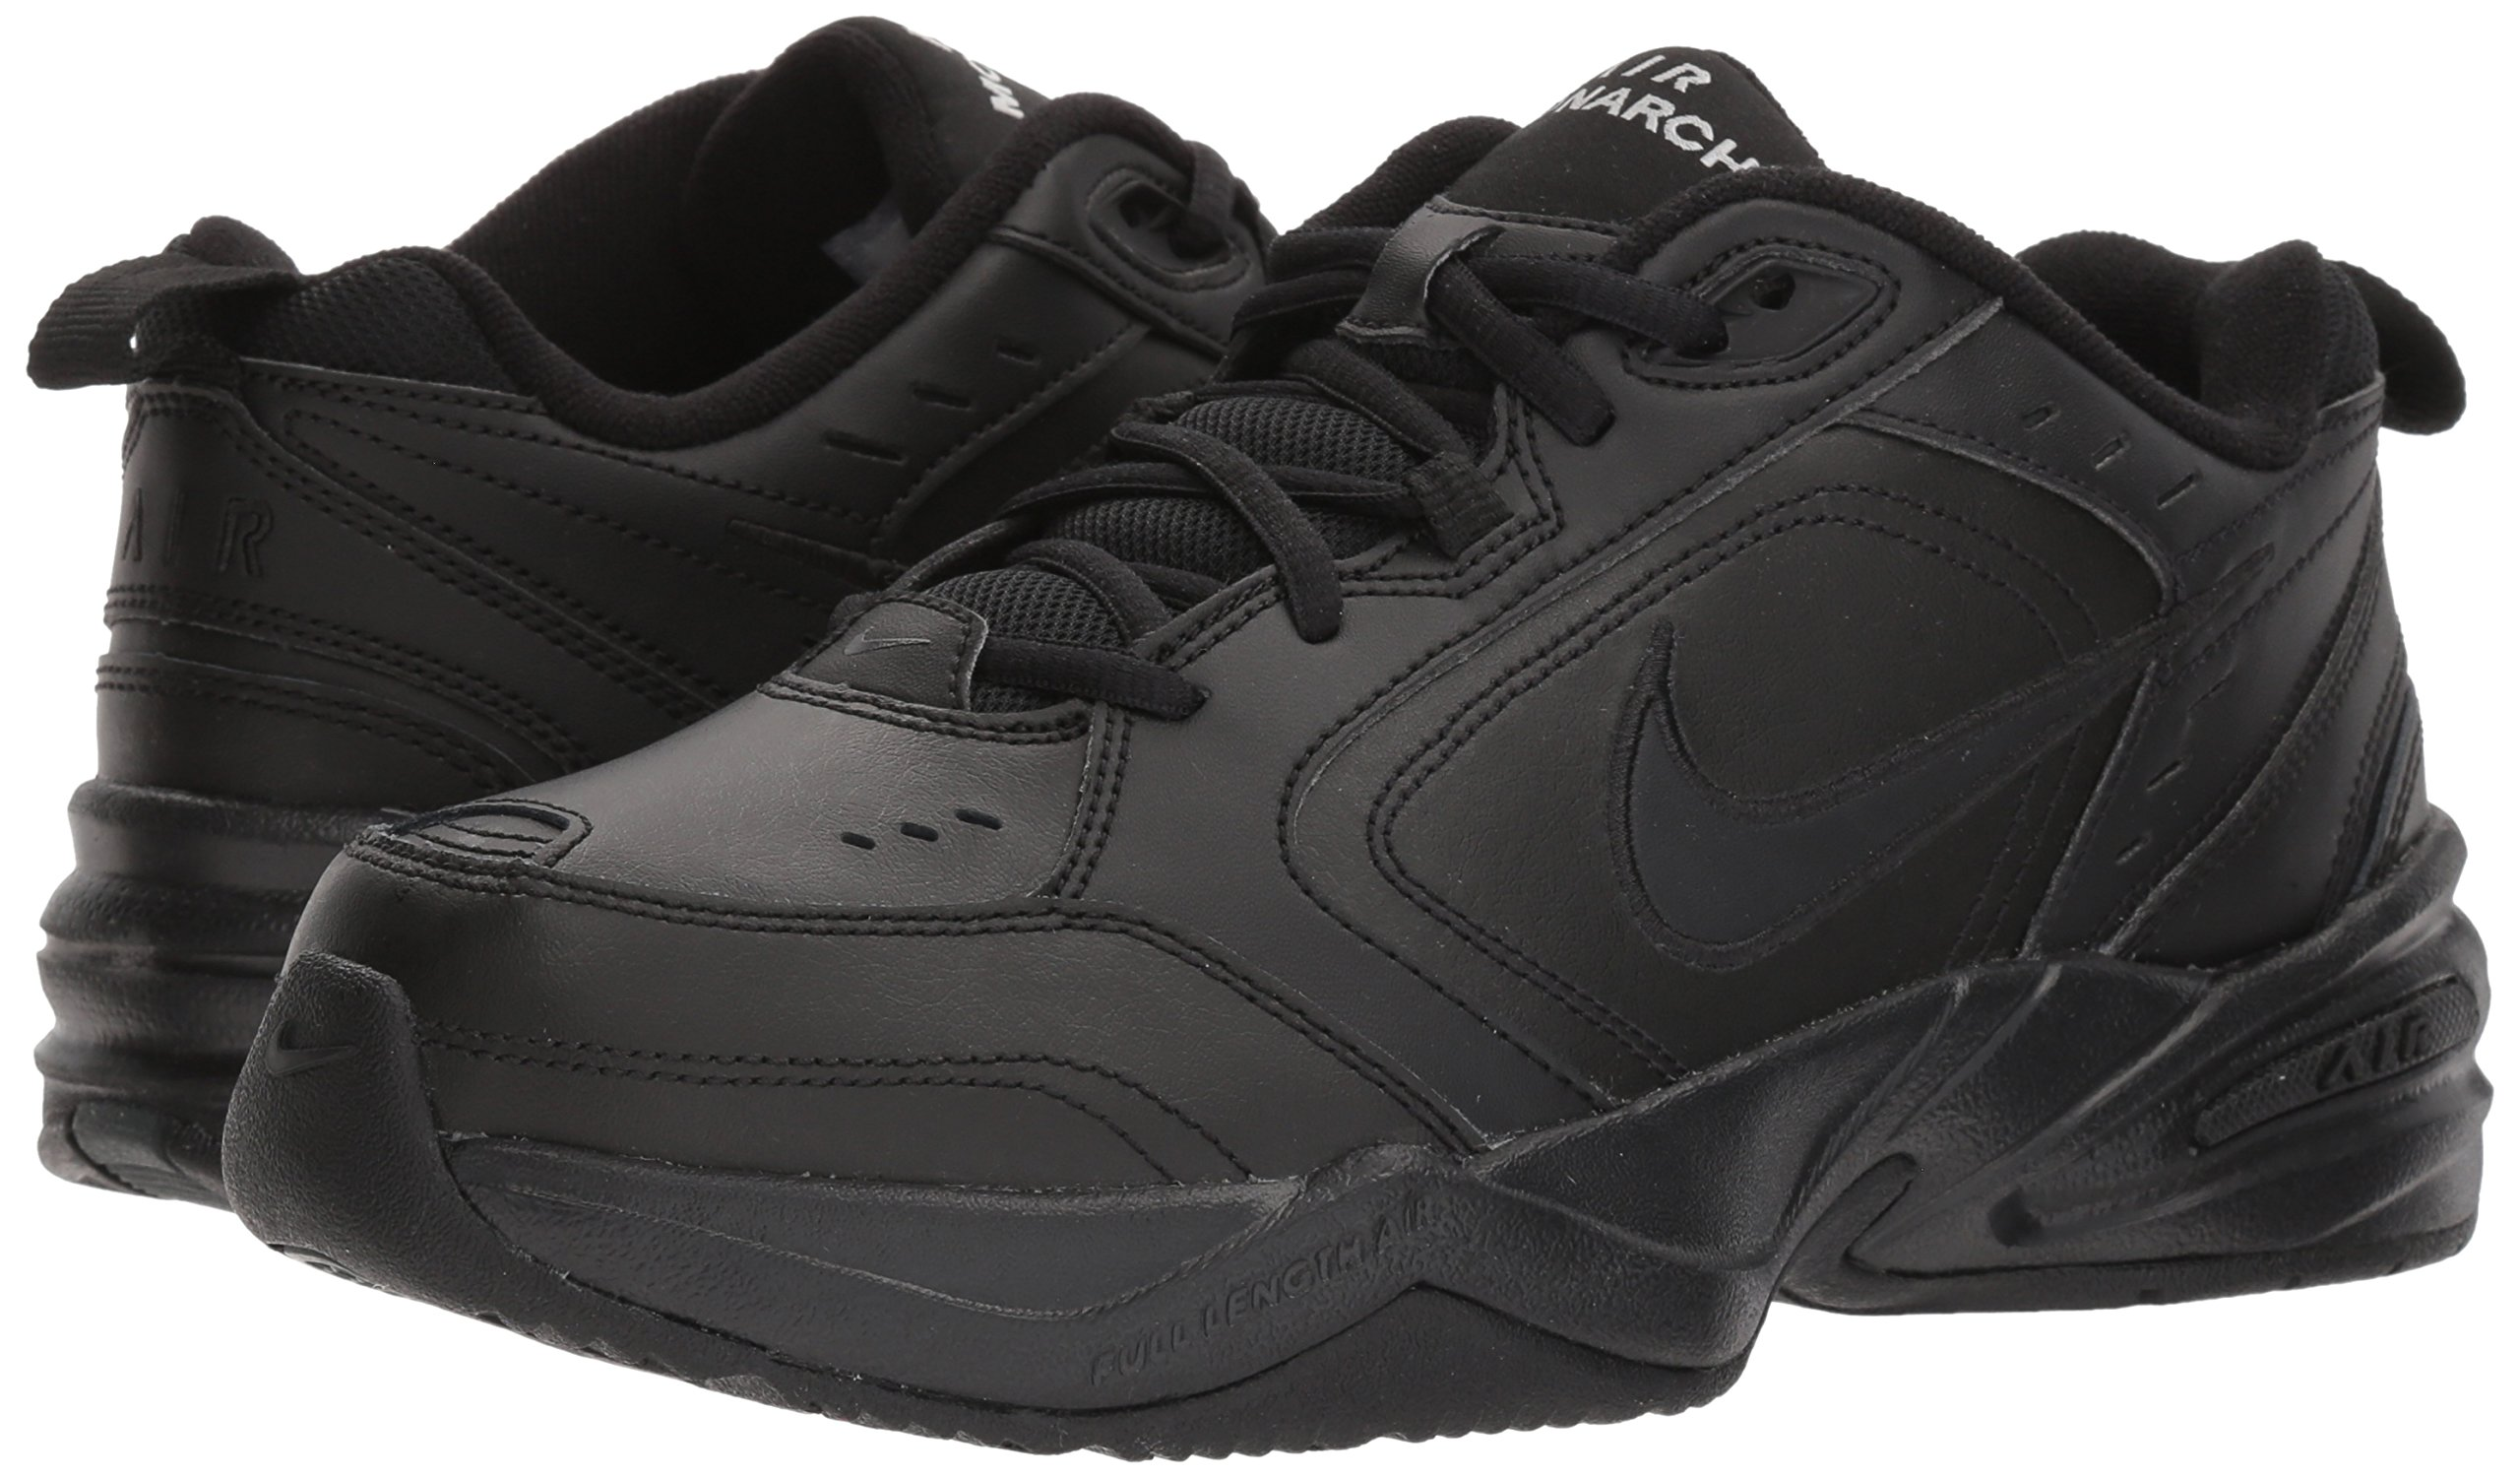 NIKE AIR MONARCH IV (MENS) - 6 Black/Black by Nike (Image #6)